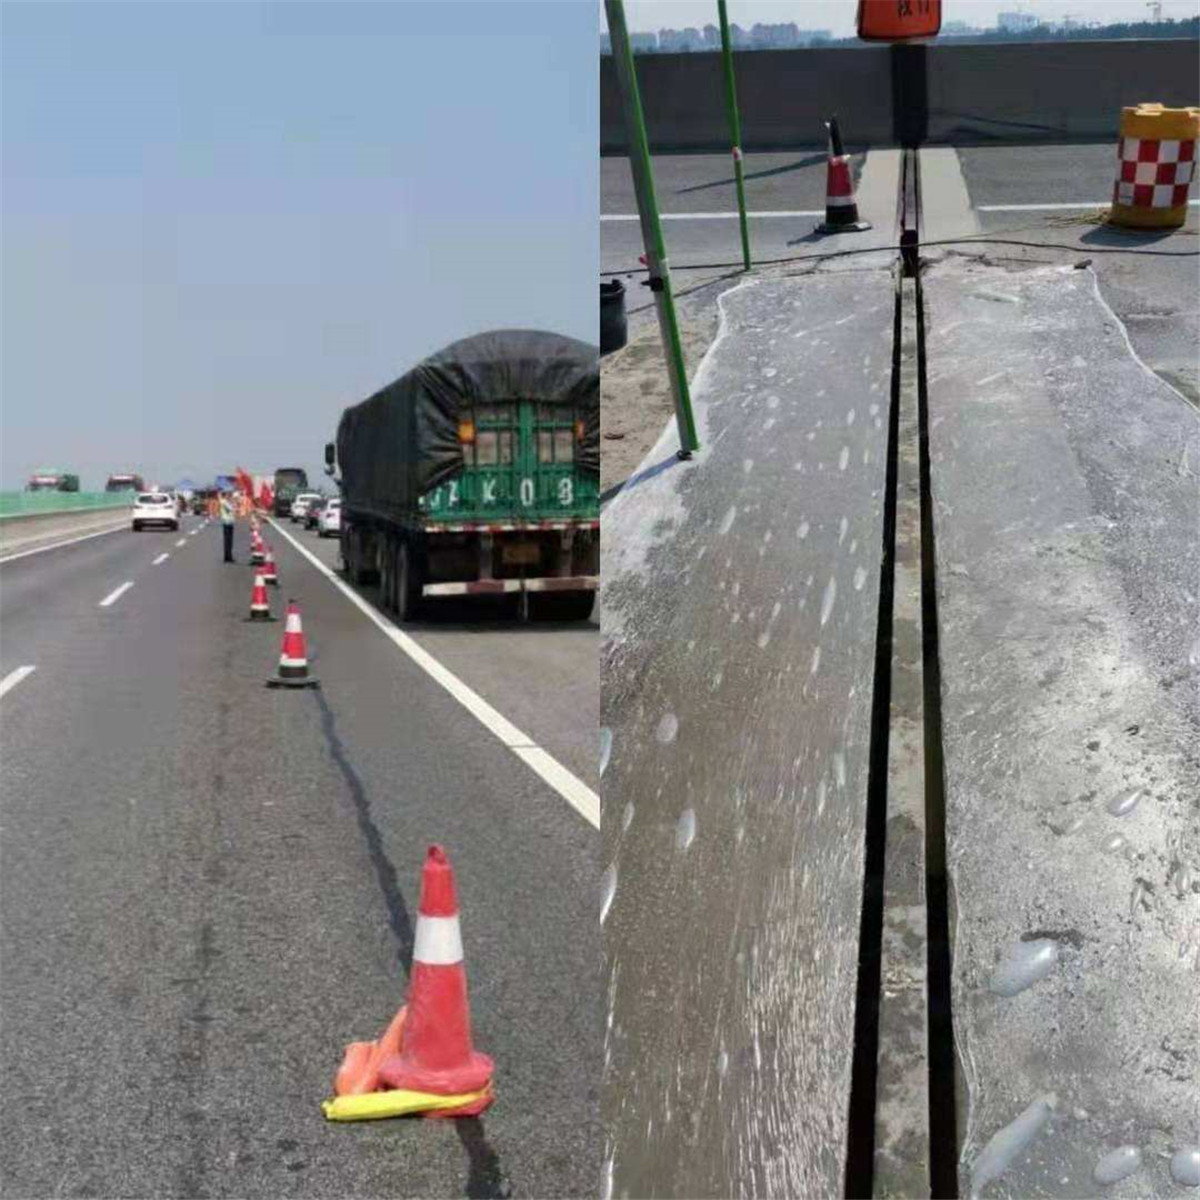 Common Quality Risks And Control Measures For Bridge Deck, Parapet And Expansion Joint Installations